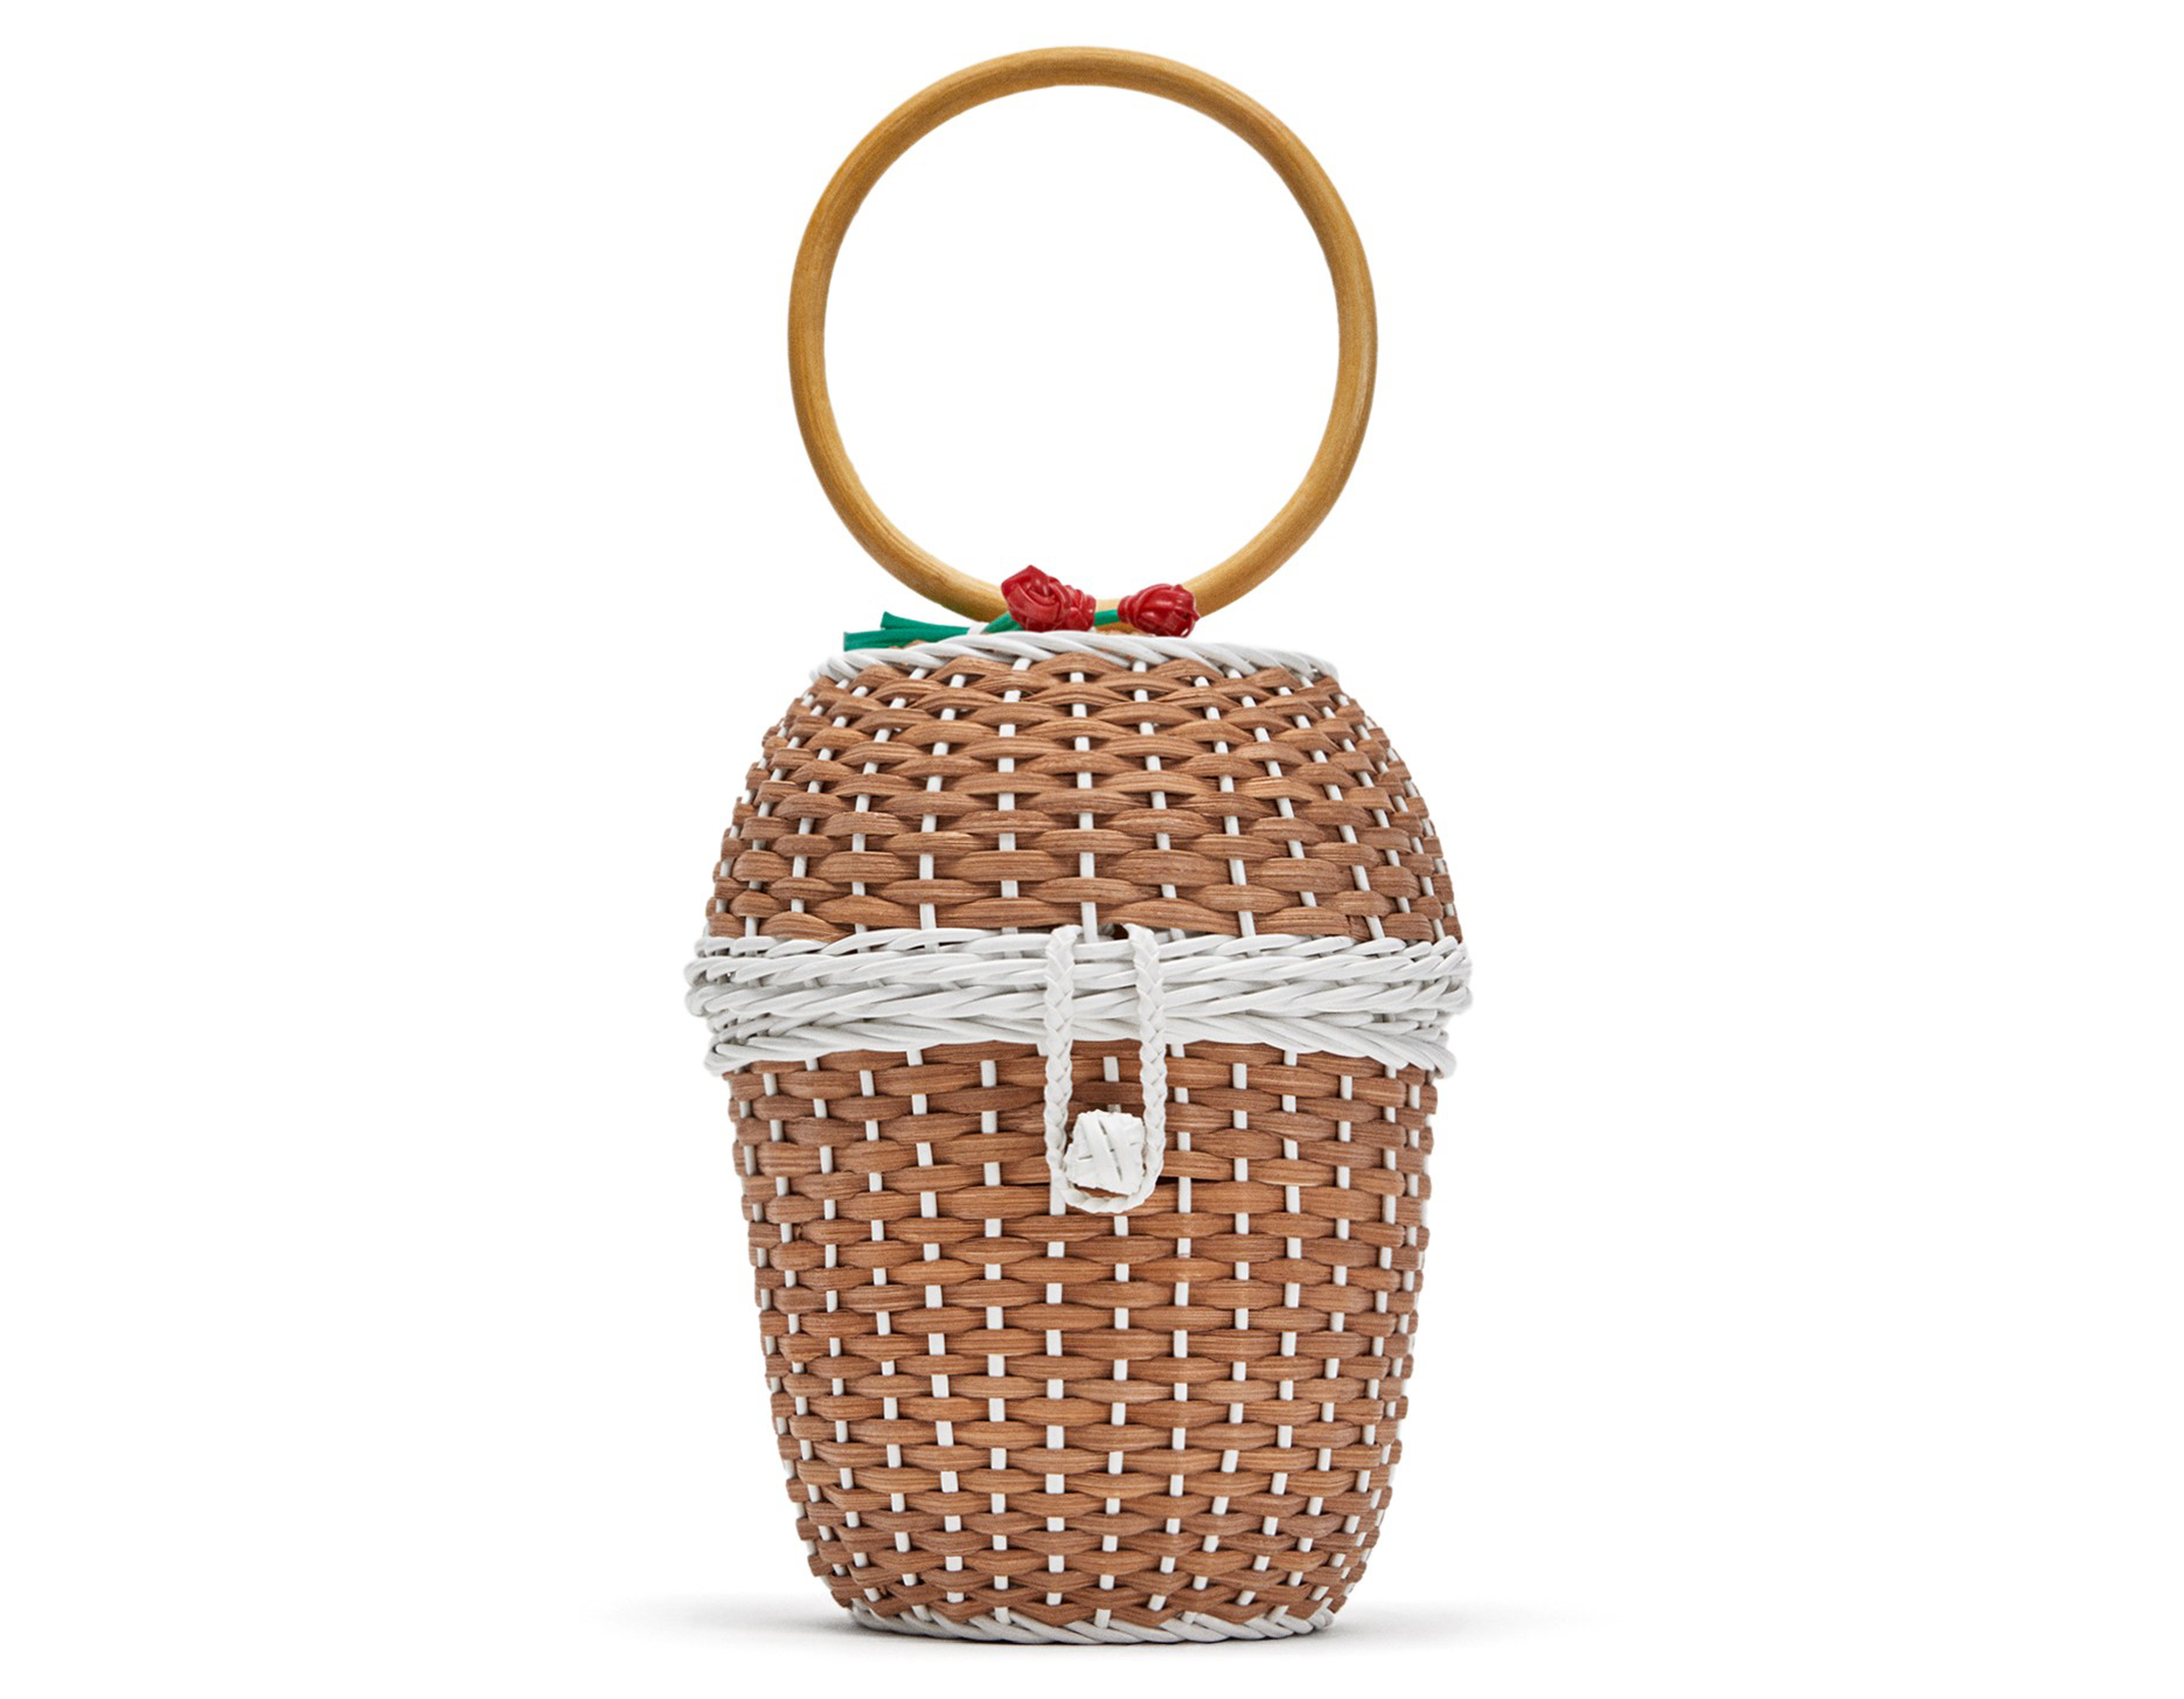 Zara Basket with Floral Detail